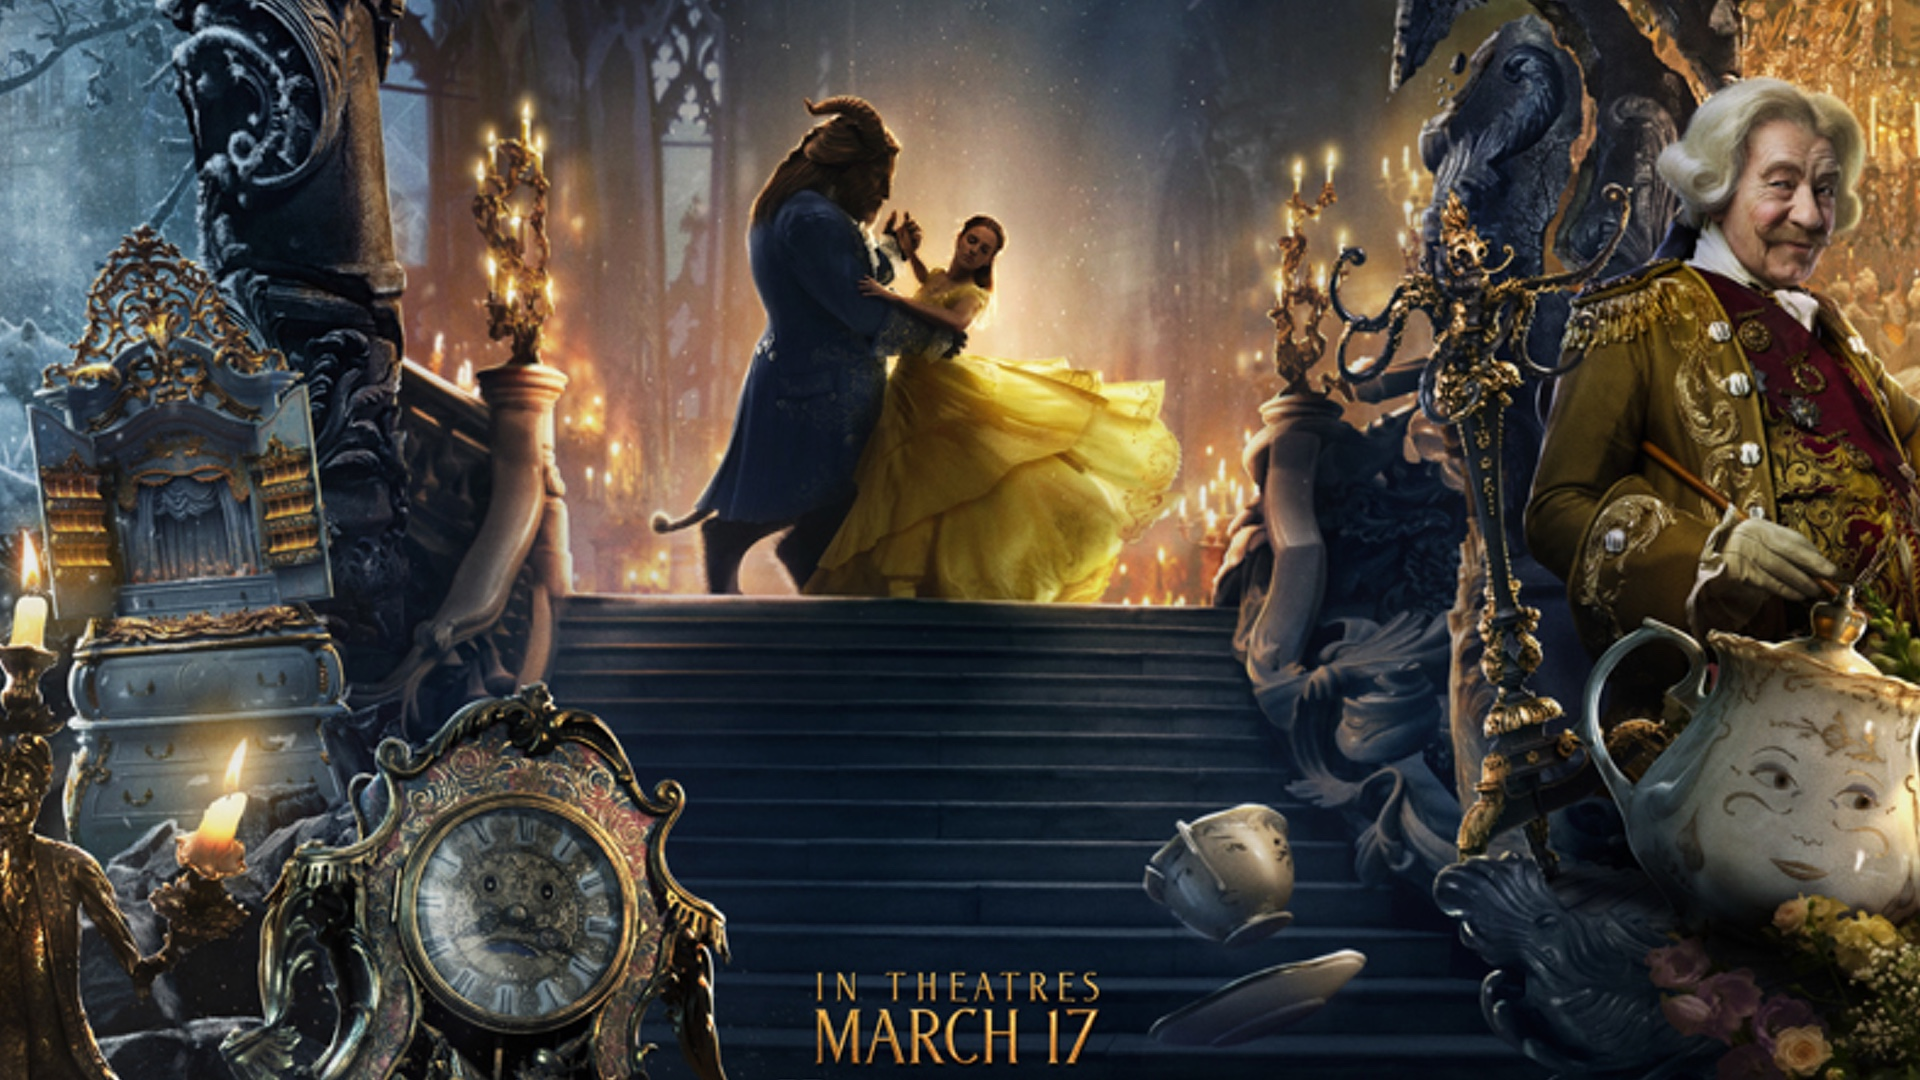 Disney Has Released A Stunning New Banner Promoting Their Live Action Adaptation Of Beauty And The Beast It Definitely Does Good Job Showing Off